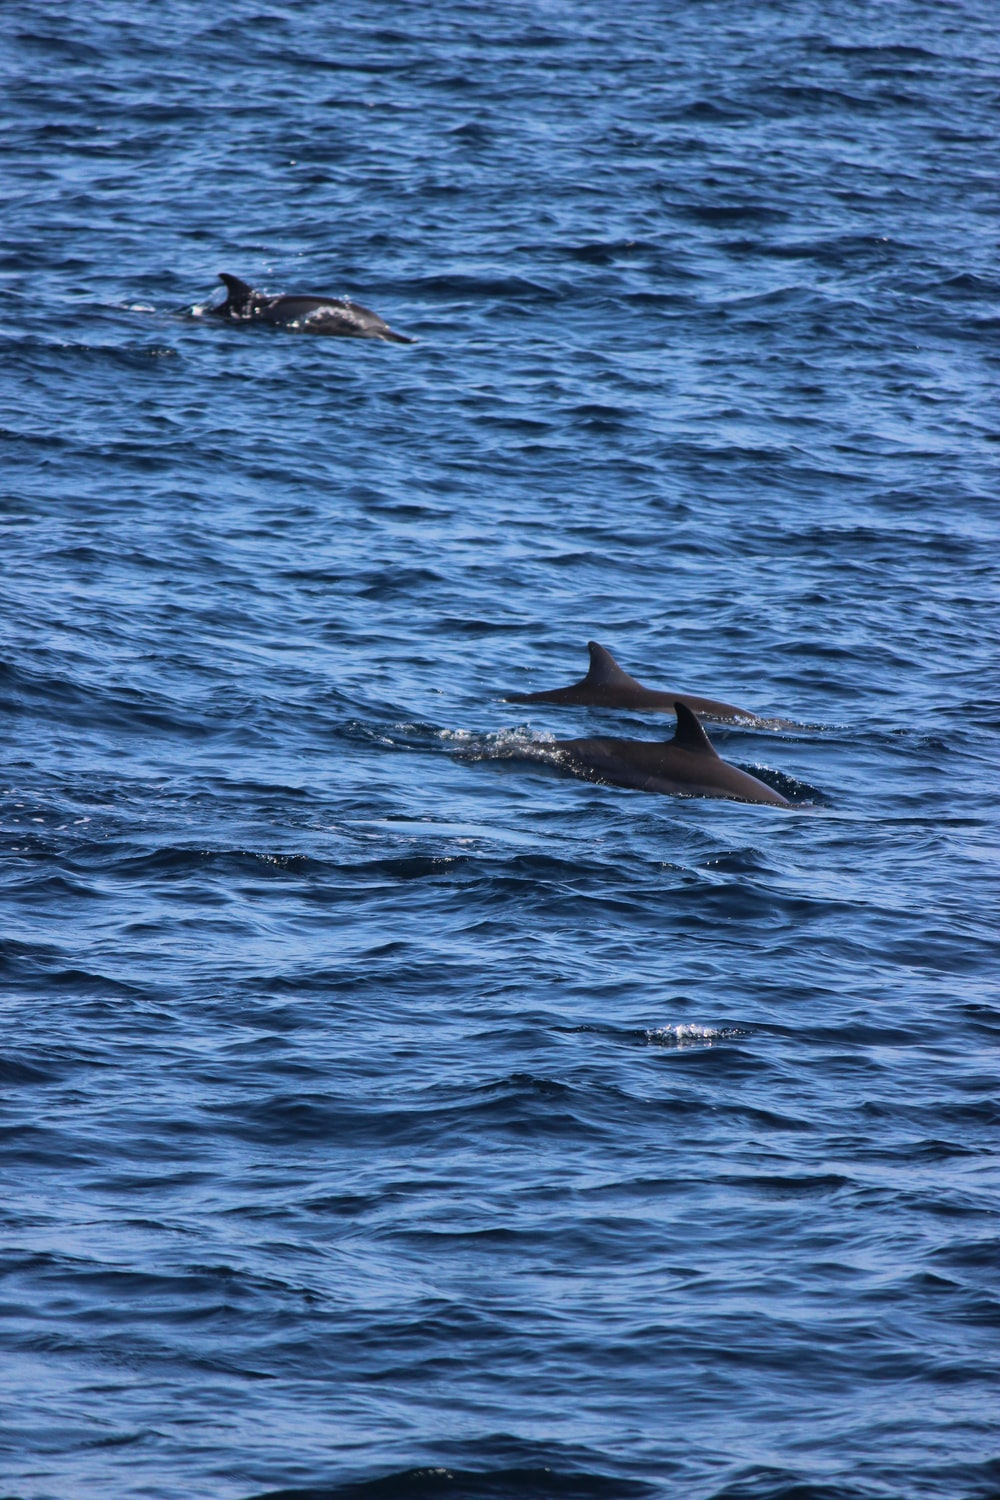 black dolphins on body of water